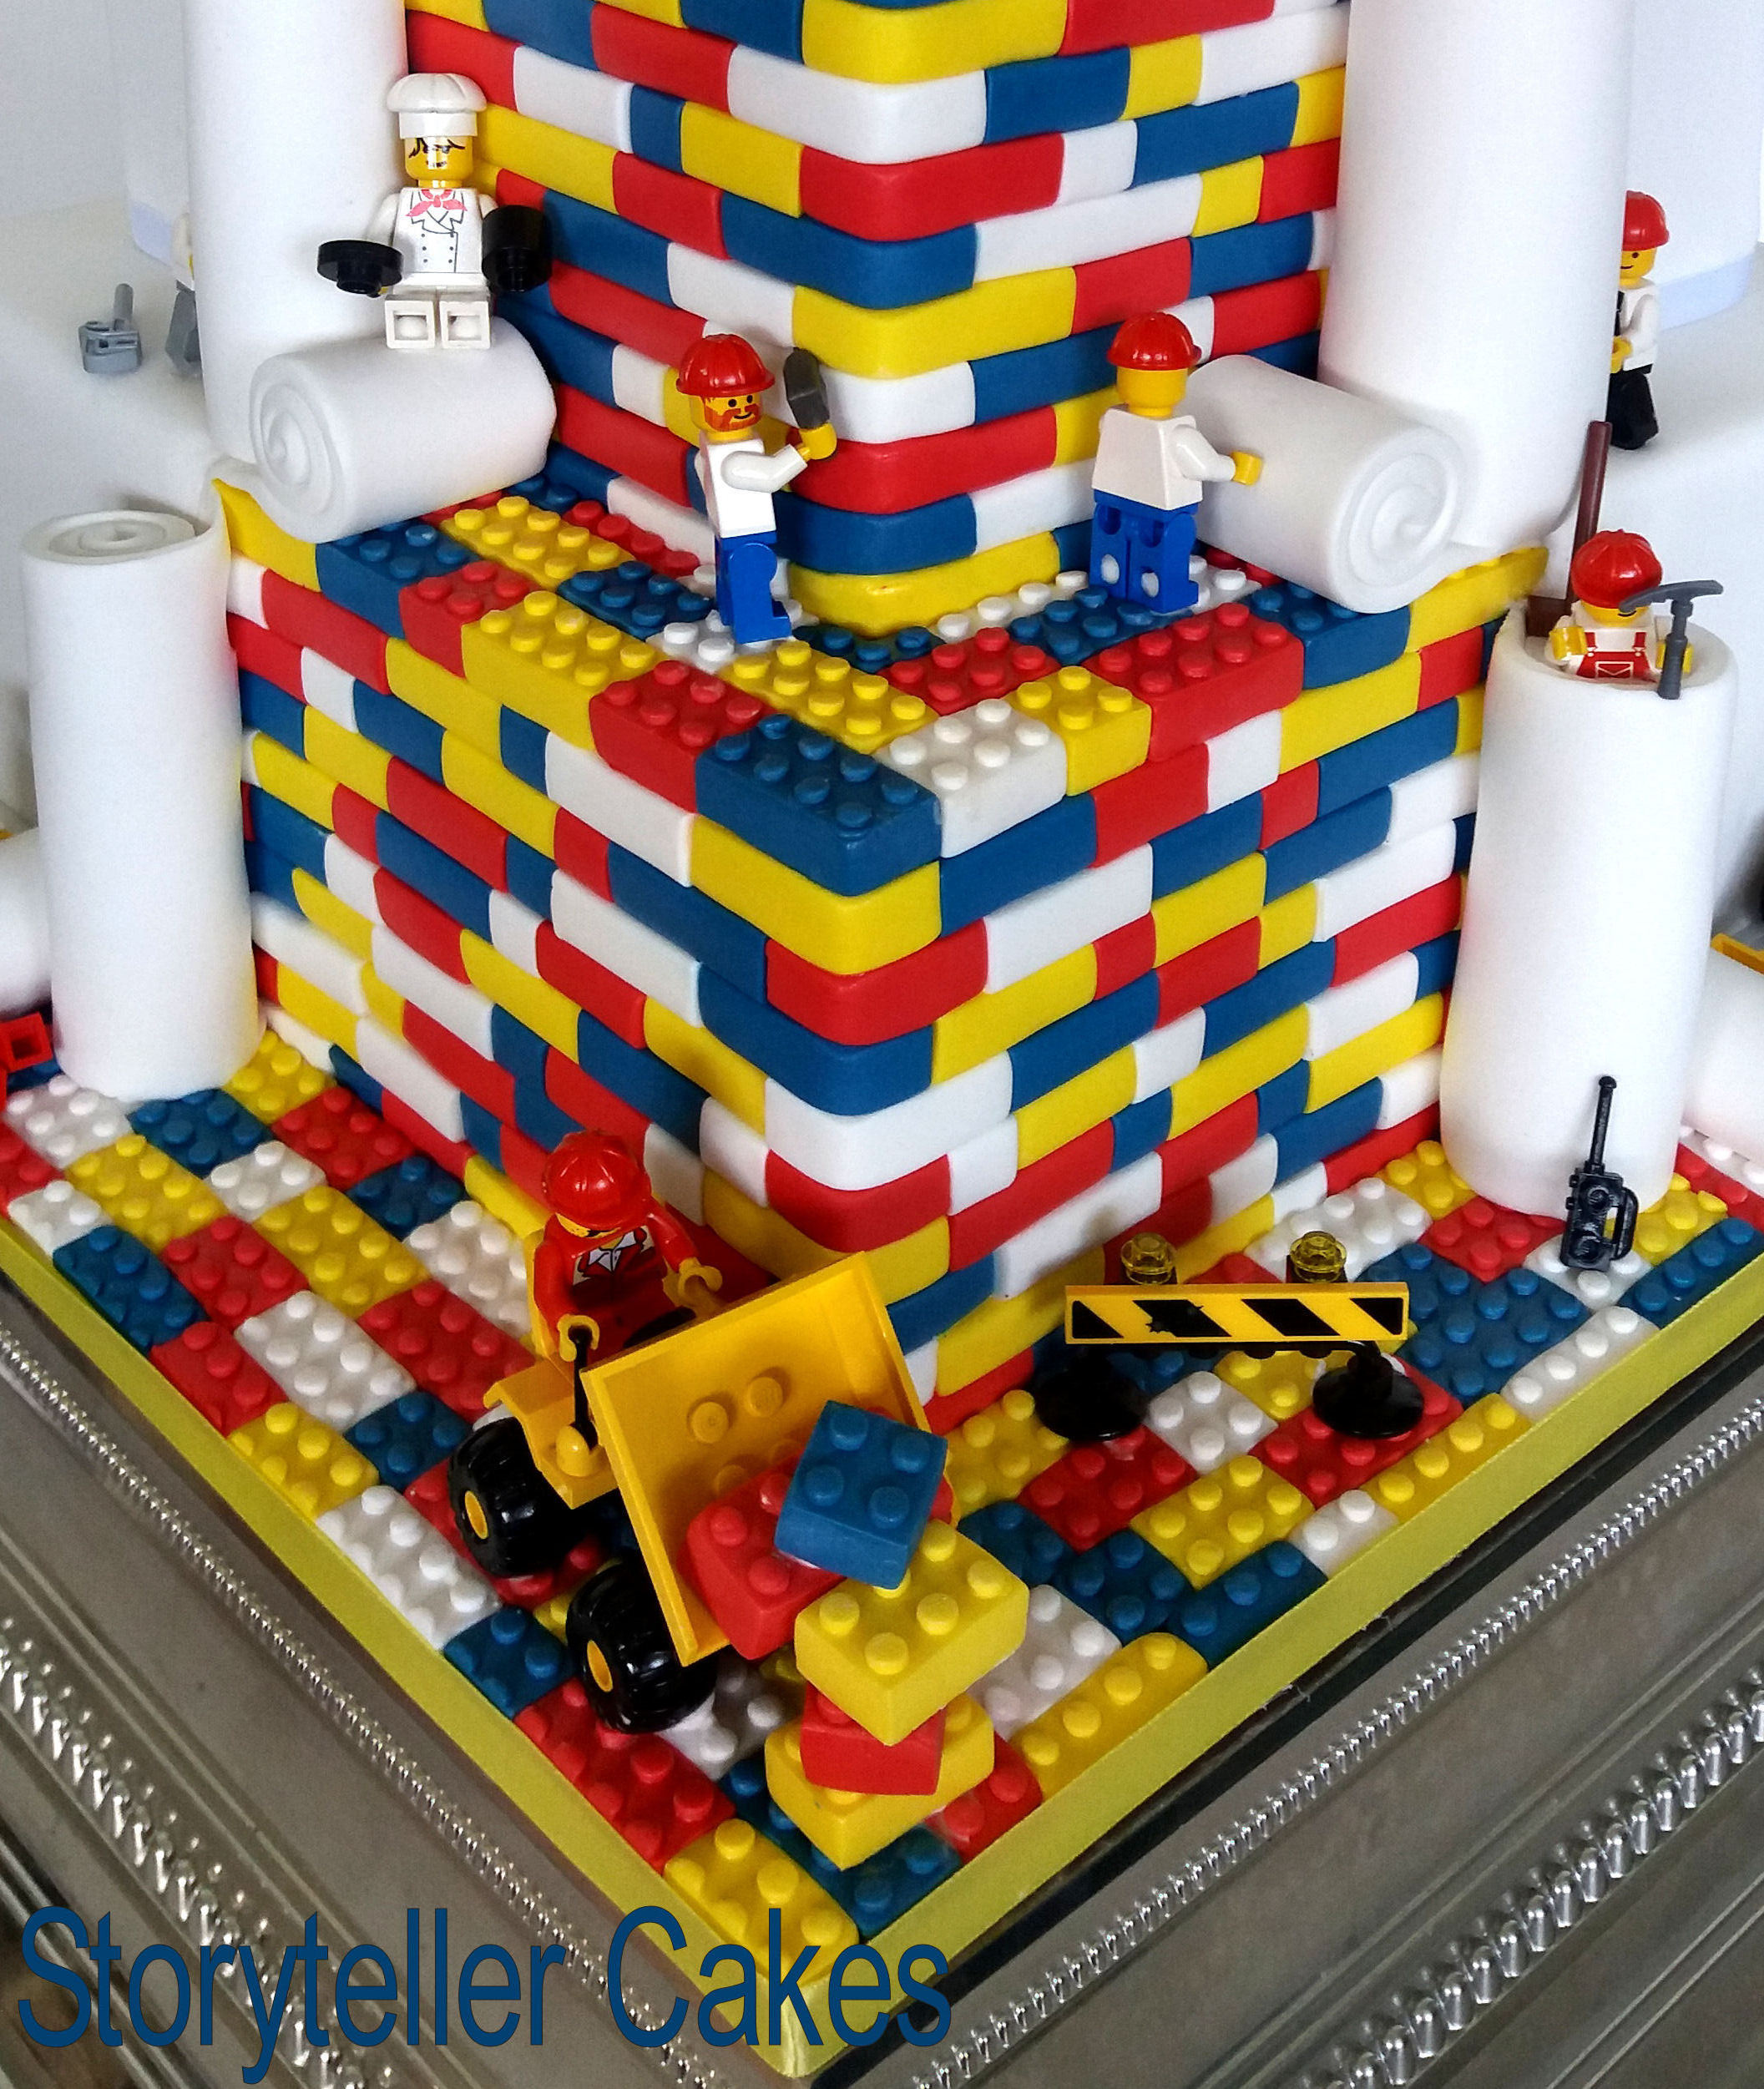 Lego Wedding Cake 3.jpg